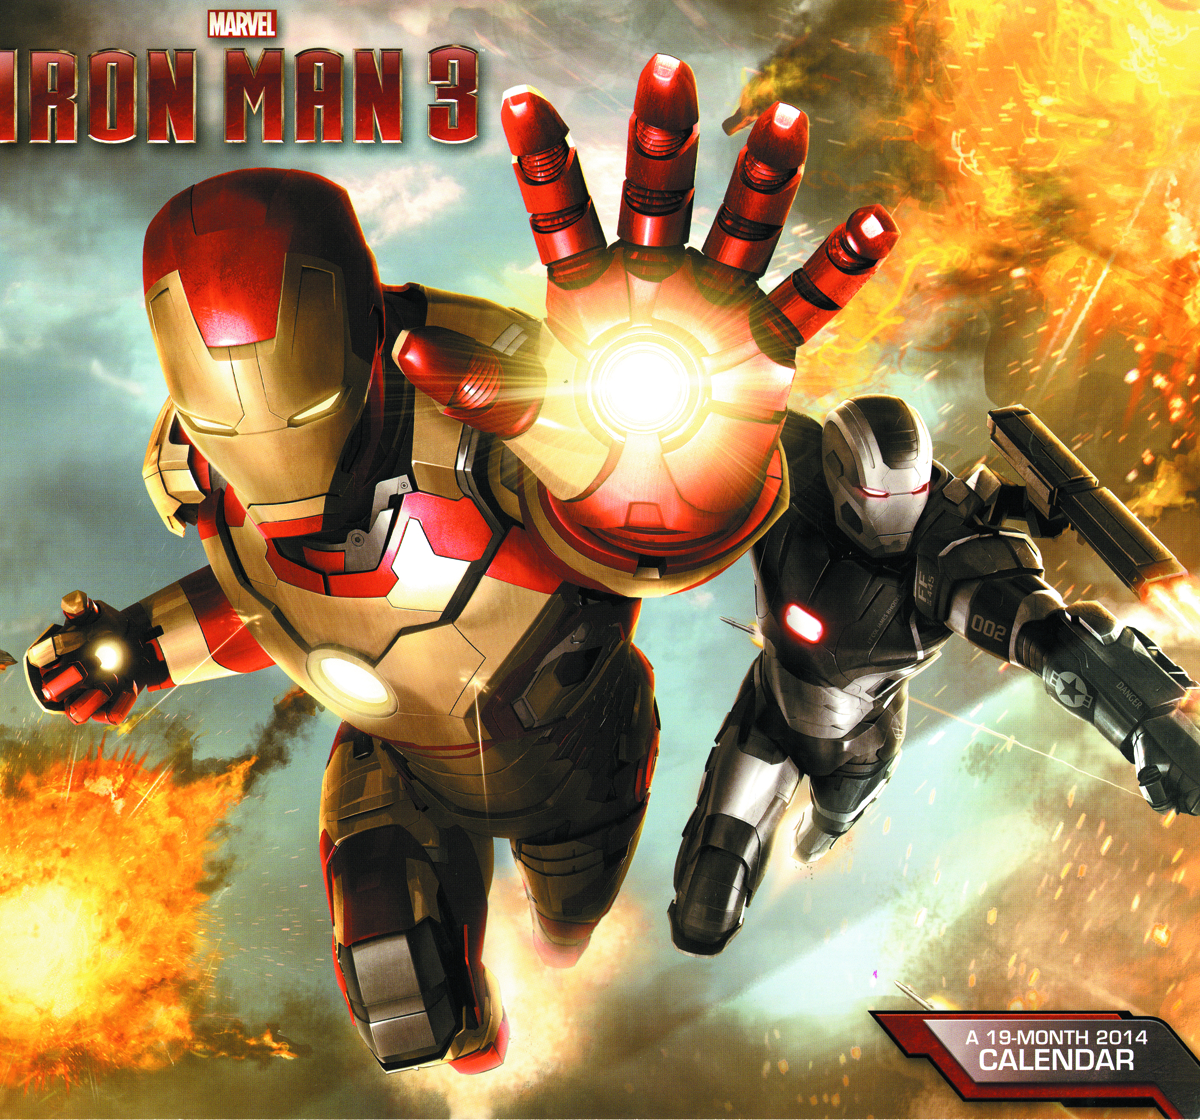 IRON MAN 3 19 MONTH 2014 WALL CAL